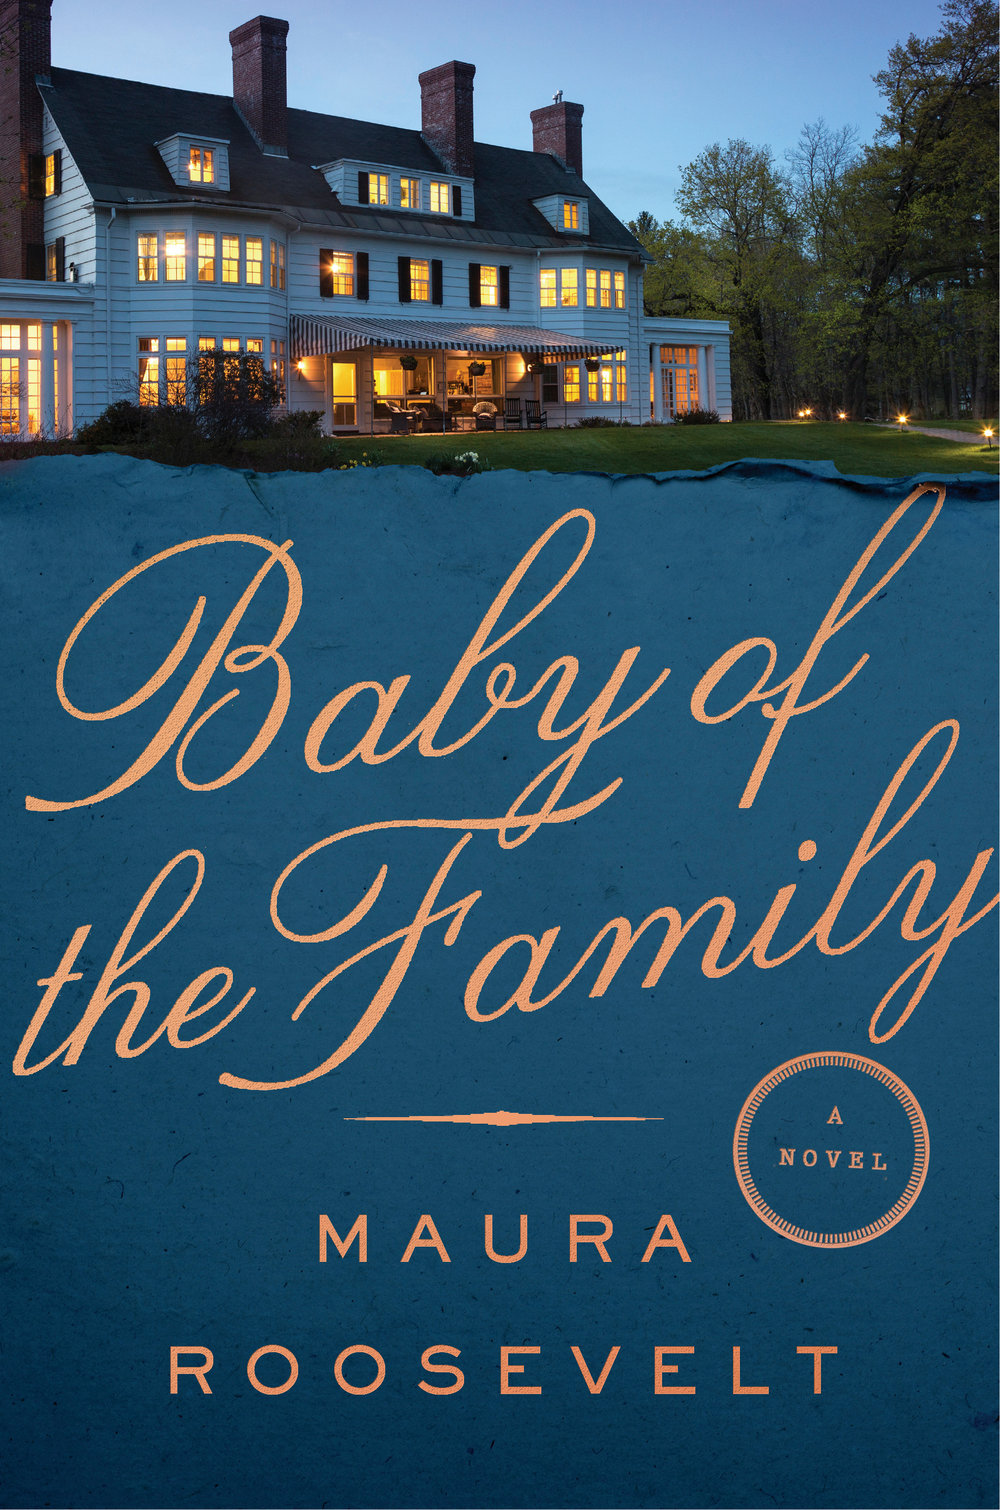 "BABY OF THE FAMILY - Advance Praise:""Roosevelt's debut reveals a sure hand, an eye for detail, and a keen sense of the absurd, and her affection for Brooke, Shelley, and Nick shines through as they fumble their way toward wisdom."" —Booklist (starred review)""Baby of the Family is a masterpiece, and gripping, and Maura Roosevelt is the realest of deals. You'll love how big it is, and how thrilling."" —Darin Strauss, NBCC-winning author of Half a Life""I can't believe Maura Roosevelt's big-hearted, deliciously readable novel Baby of the Family is a debut. This is a wise and soaring book about family secrets and the price of privilege, by a writer with profound insight, immense talent, and a brilliant future."" —Julie Buntin, author of Marlena""A poetic and clever saga about a modern day American dynasty, full of intrigue and drama without ever losing its heart. This book is for anyone who loves to read about complicated families – or has one of their own.""—Kathy Wang, author of Family Trust""Baby of the Family is one of the most absorbing and stirring novels I've read in years. In this nuanced and deeply moving story, Maura Roosevelt uses her considerable gifts as a writer to explore the complexities of privilege, family, and the American Dream. It's a beautiful book full of surprises, insight, and real heart."" —Bret Anthony Johnston"